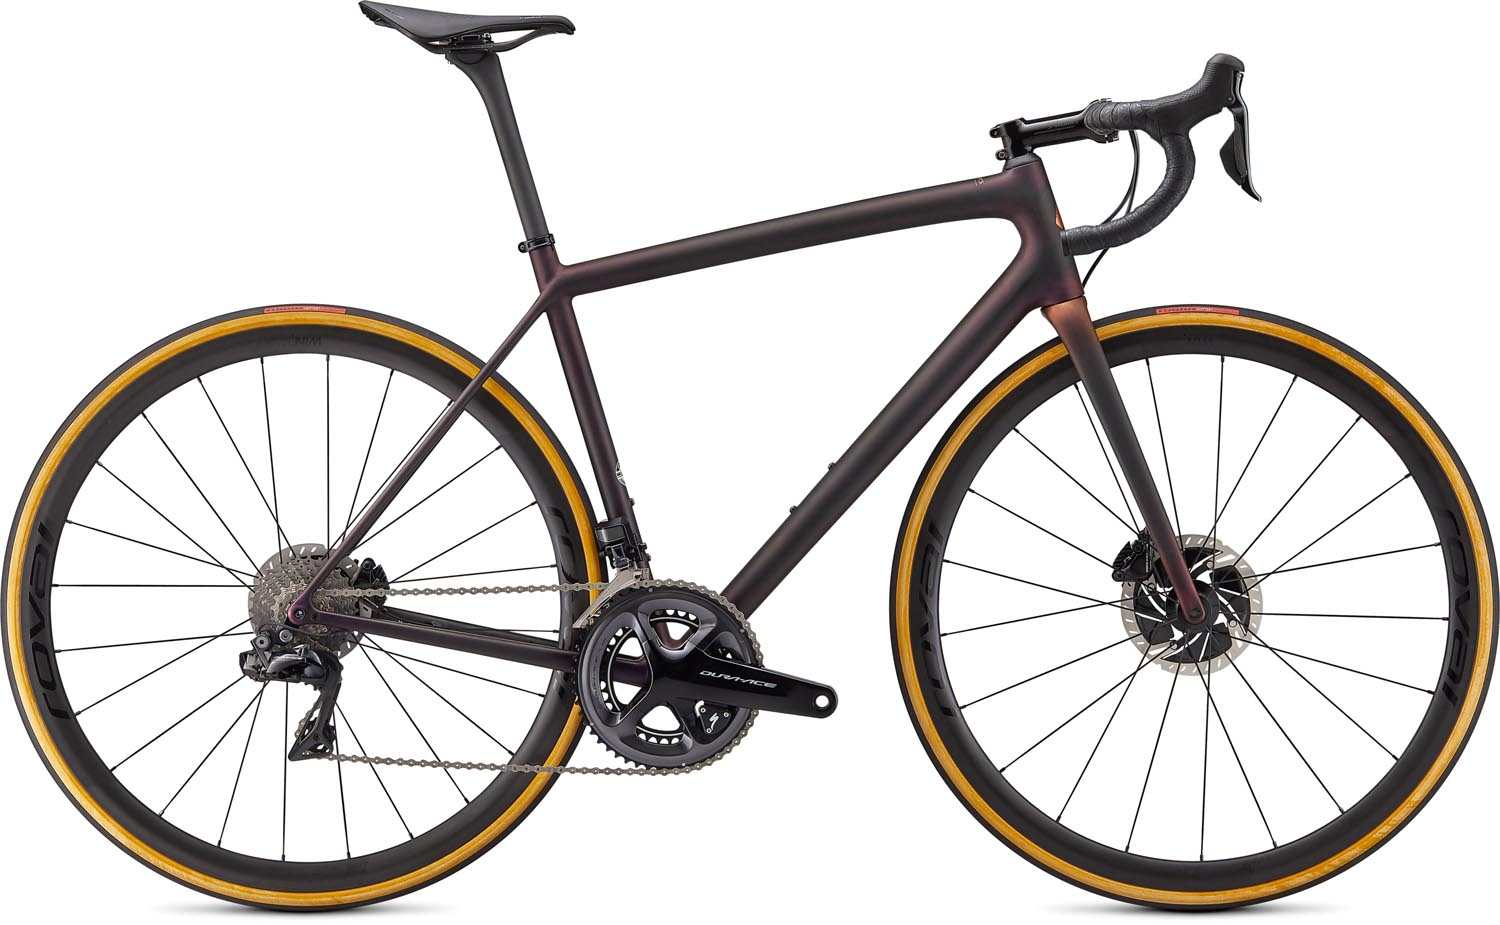 silniční kolo Specialized S-Works Aethos Di2 2021 satin carbon/red/bronze